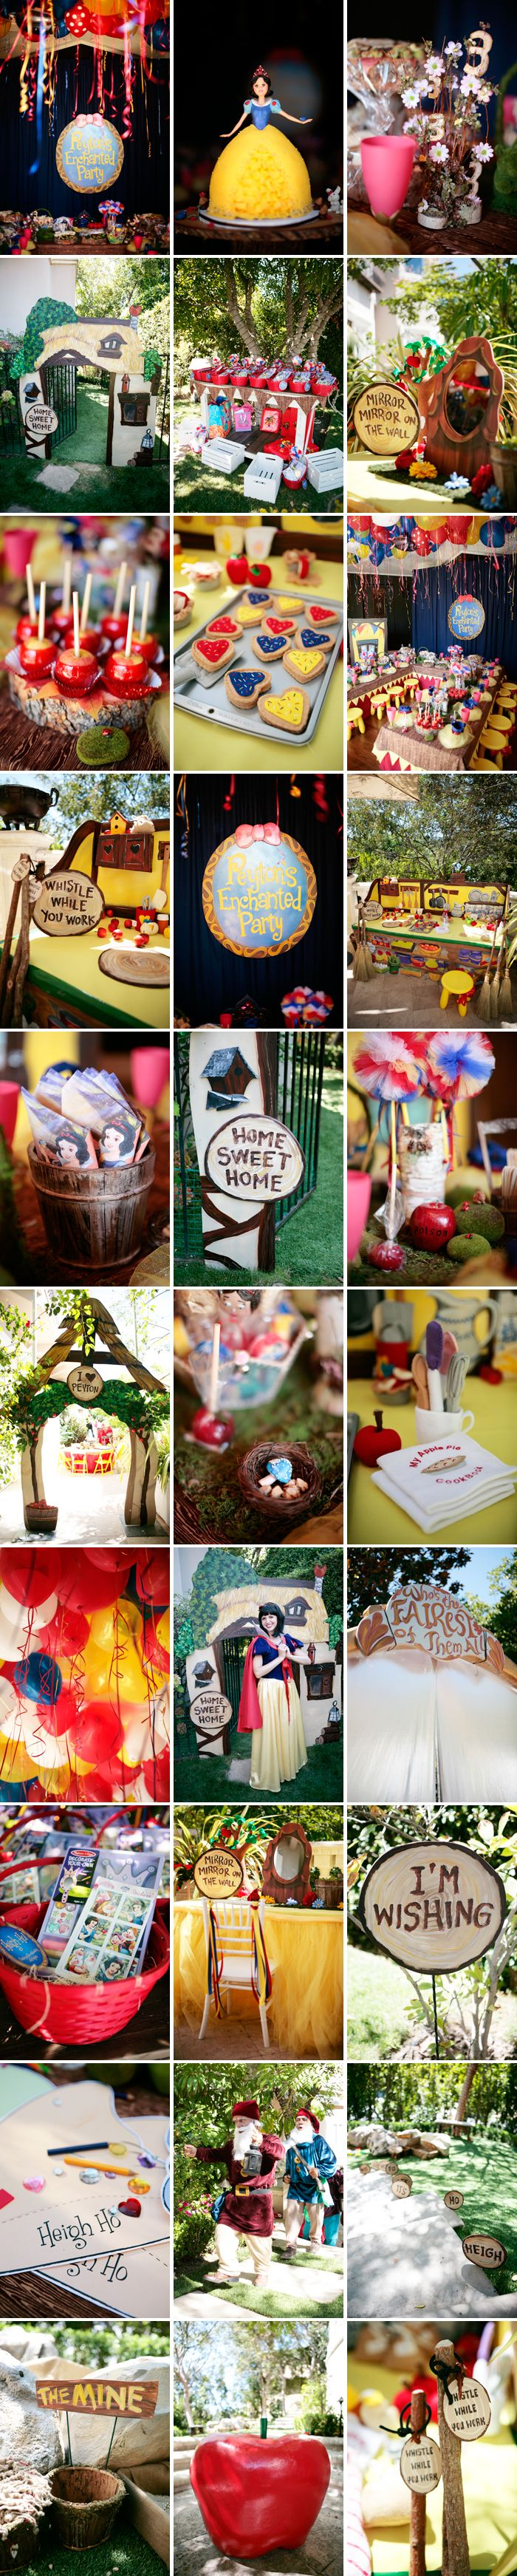 Snow White's Enchanted Party